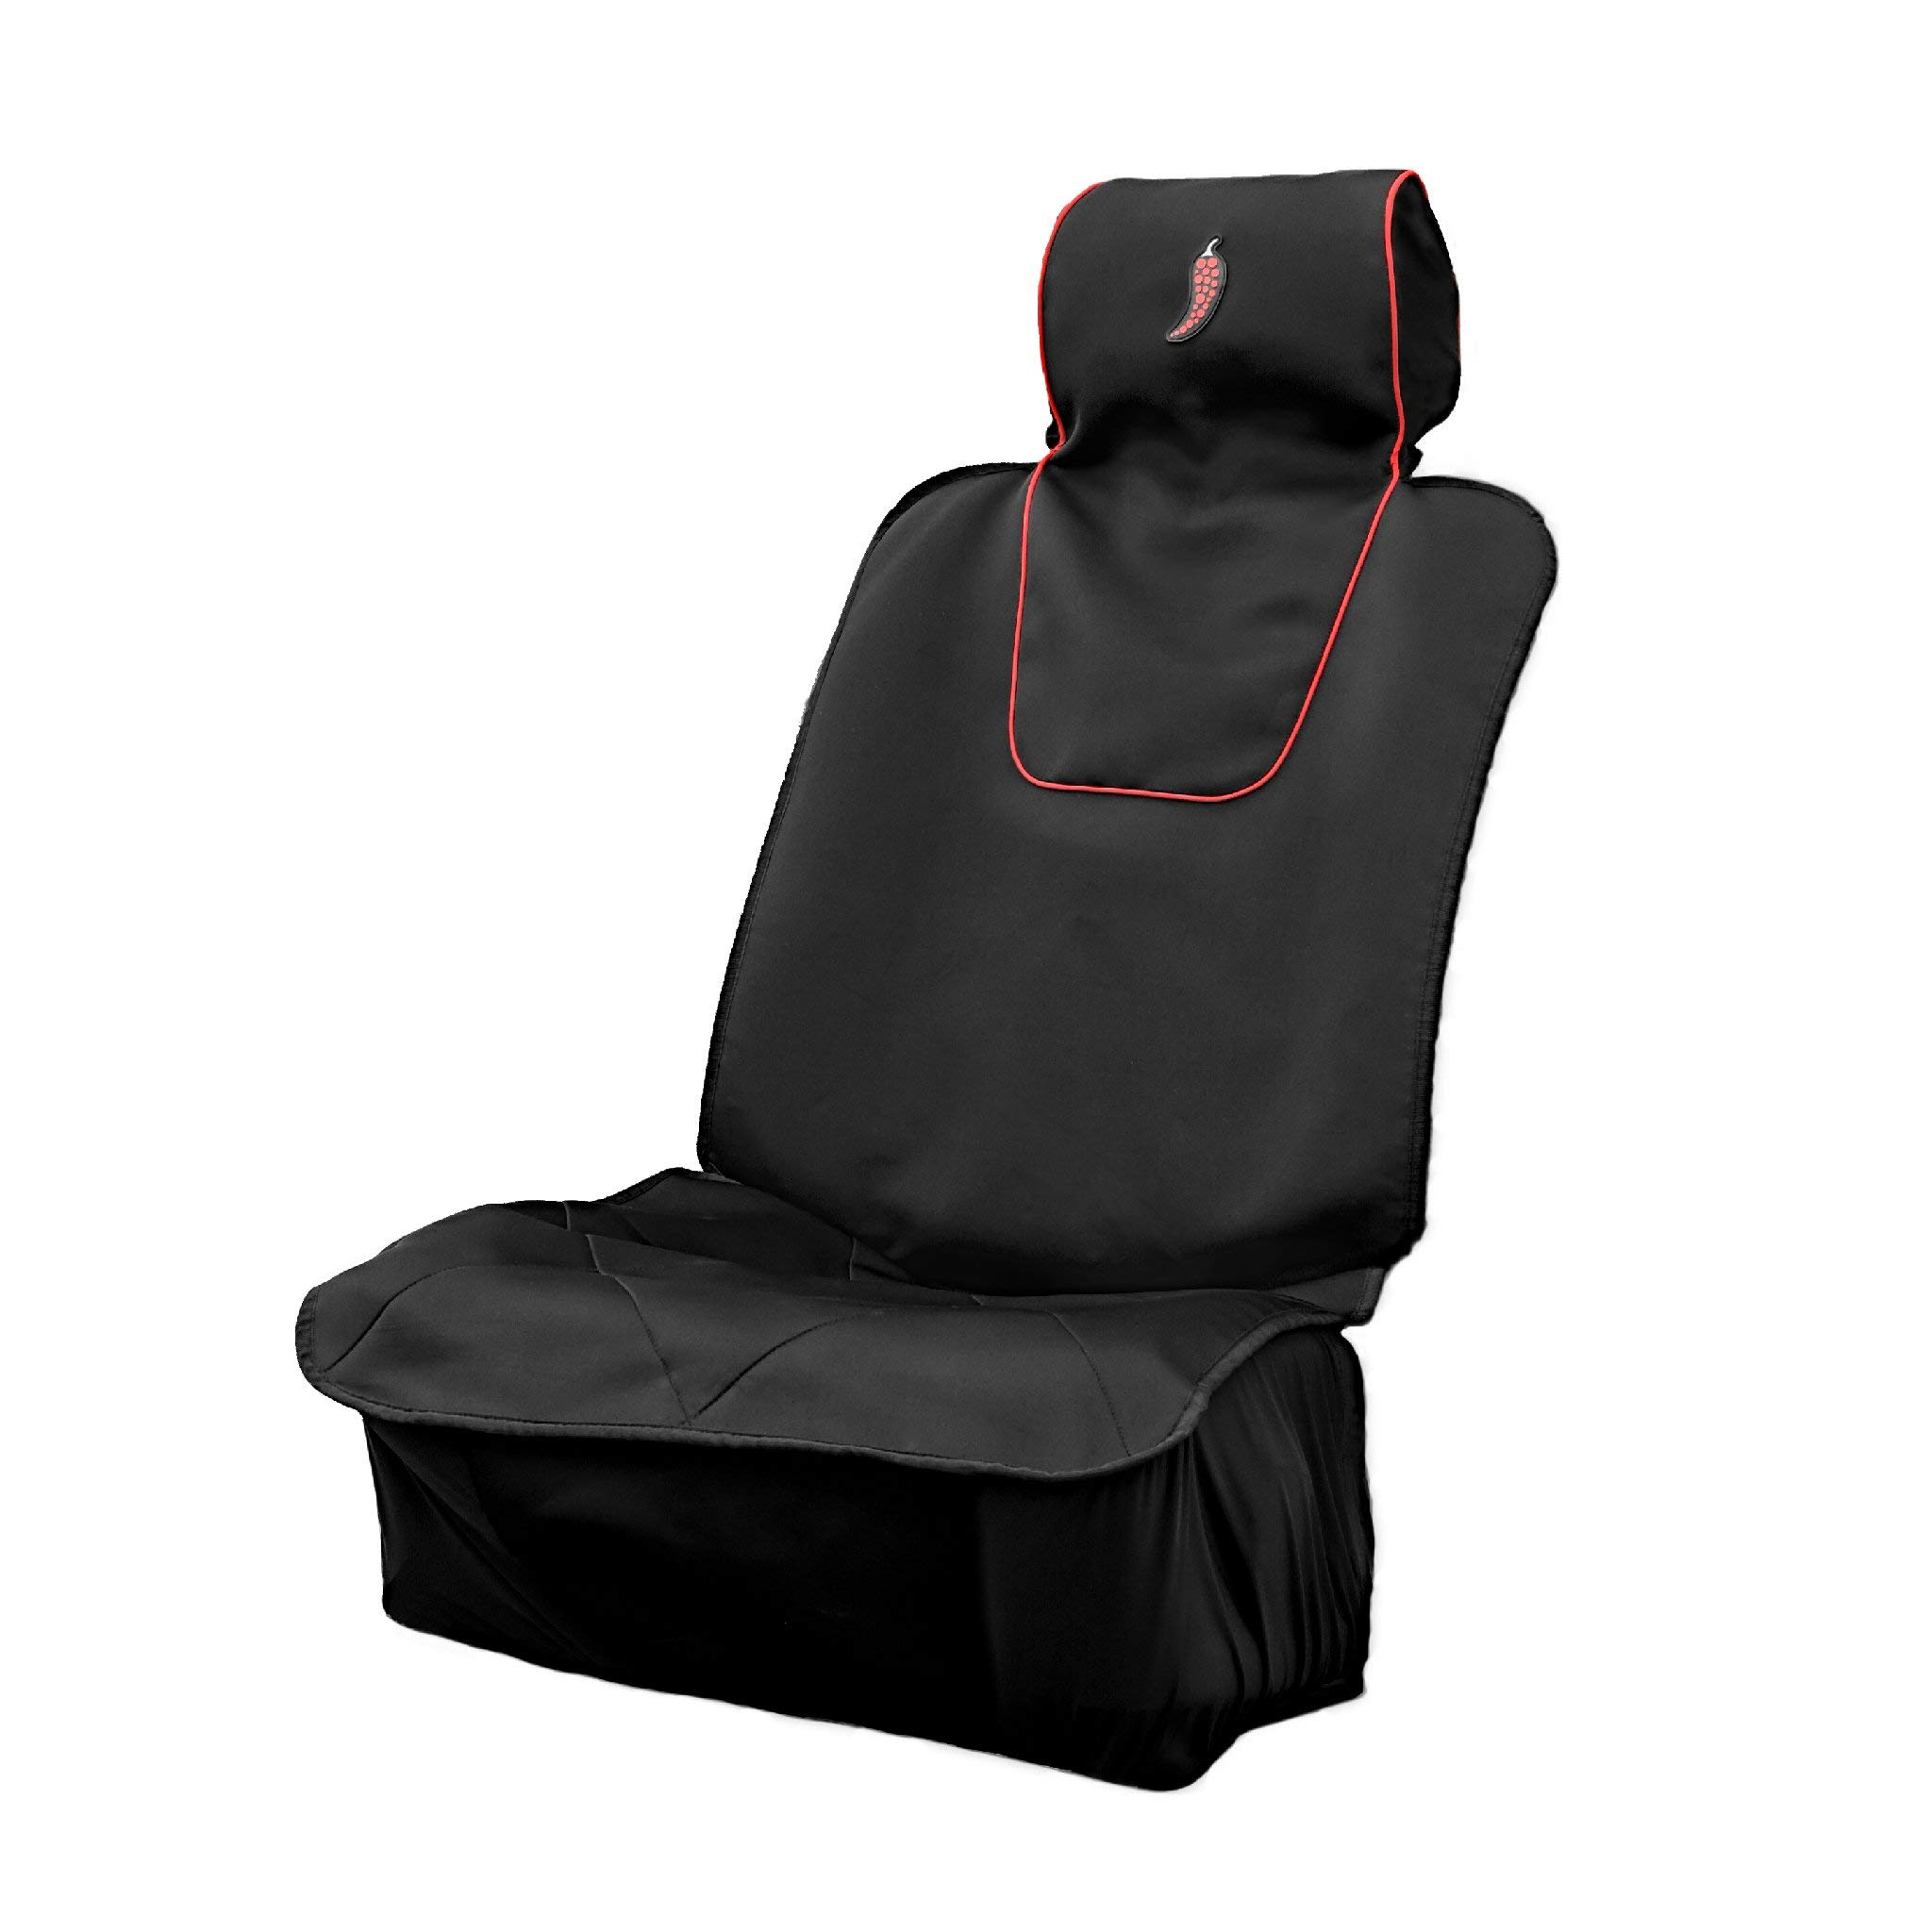 Dry Rub Medium Sweat Proof Car Seat Cover - Perfect for Running, Crossfit, After Gym and Outdoor Activities - Universal Fit - Machine Washable - Drawstring Bag Included (Red Chili)